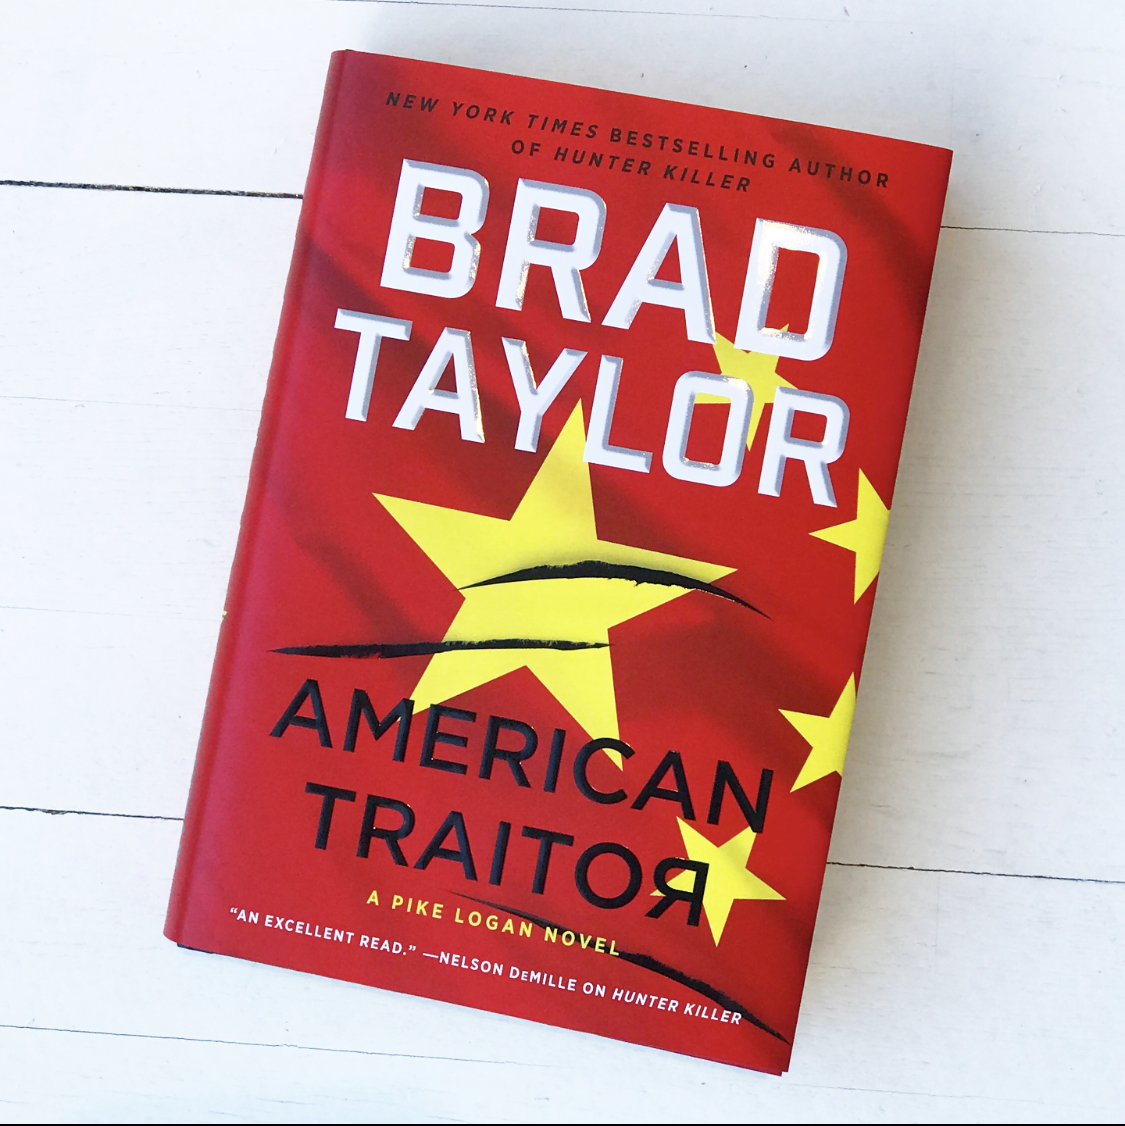 """Grab a book that will thrill you! We recommend Brad Taylor's newest pulse-pounding read """"American Traitor"""" as Pike Logan must stop a threat of war where nothing is as it seems! #bradtaylor #amreading"""